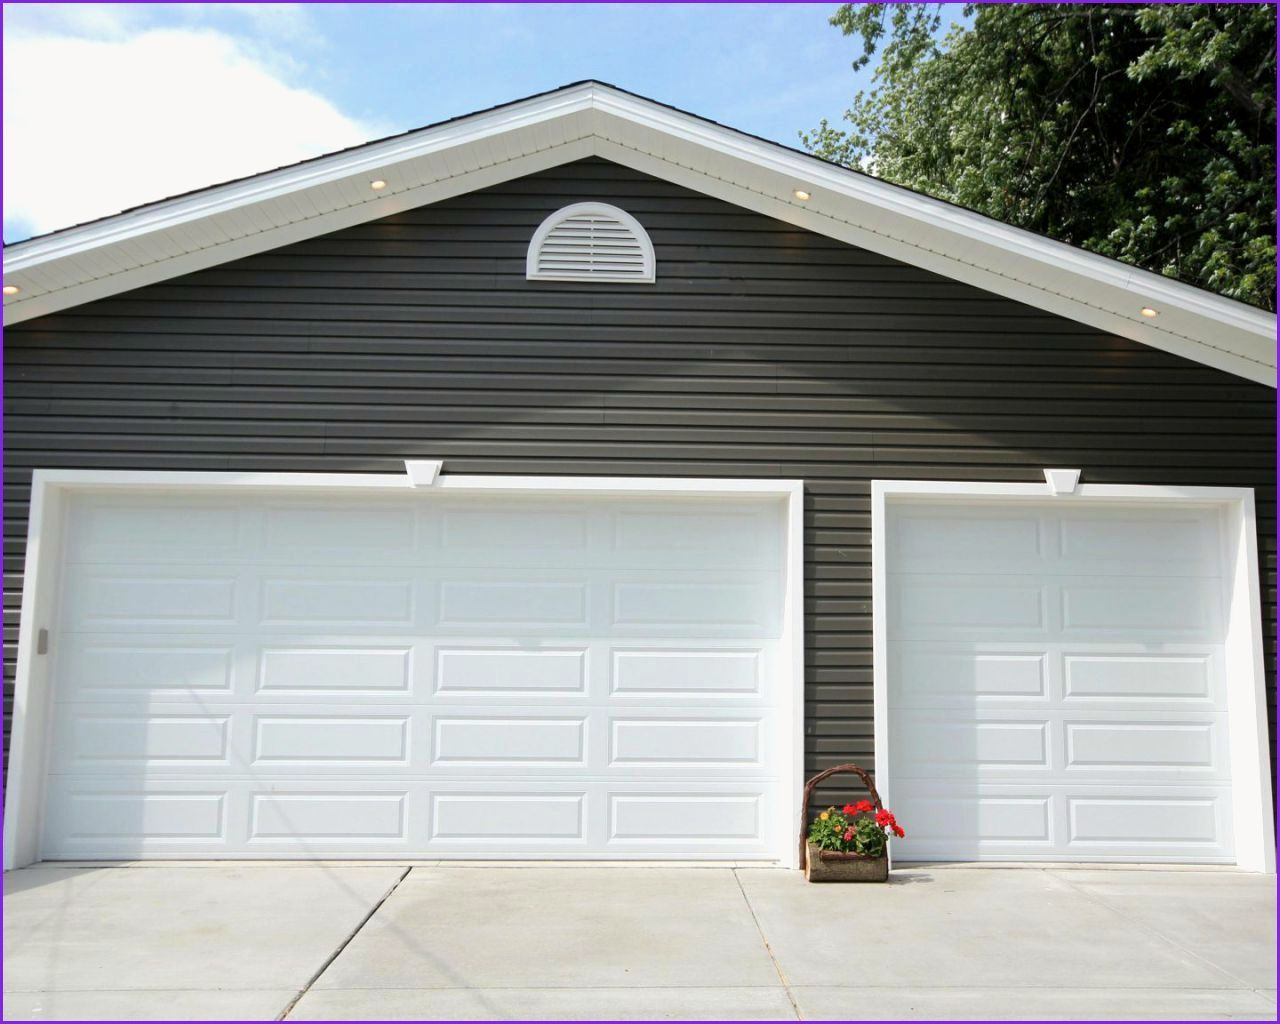 Awesome Garage Door Costco Garage Doors Garage Door Design 16x8 Garage Door